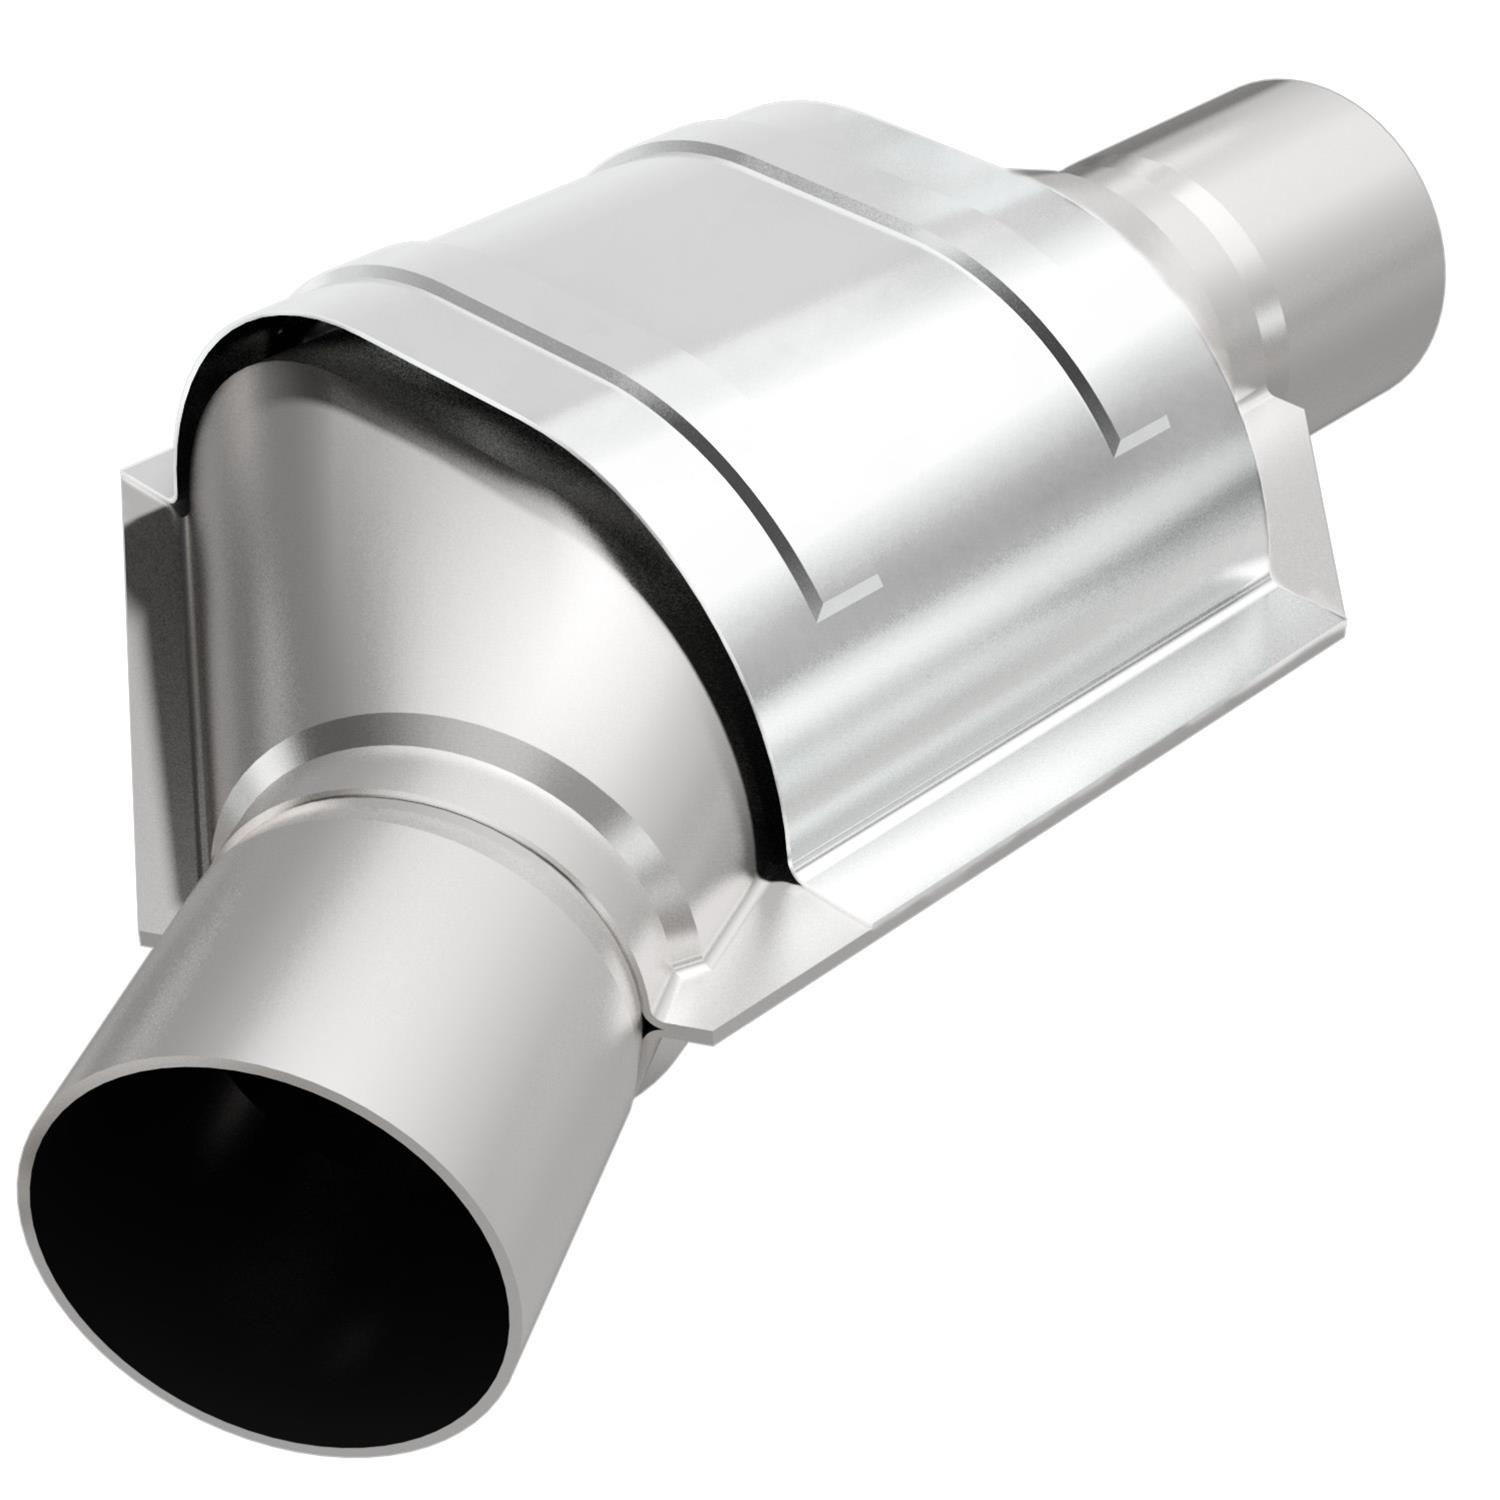 MagnaFlow 99204HM Catalytic Converter Stainless Steel Each 49-State